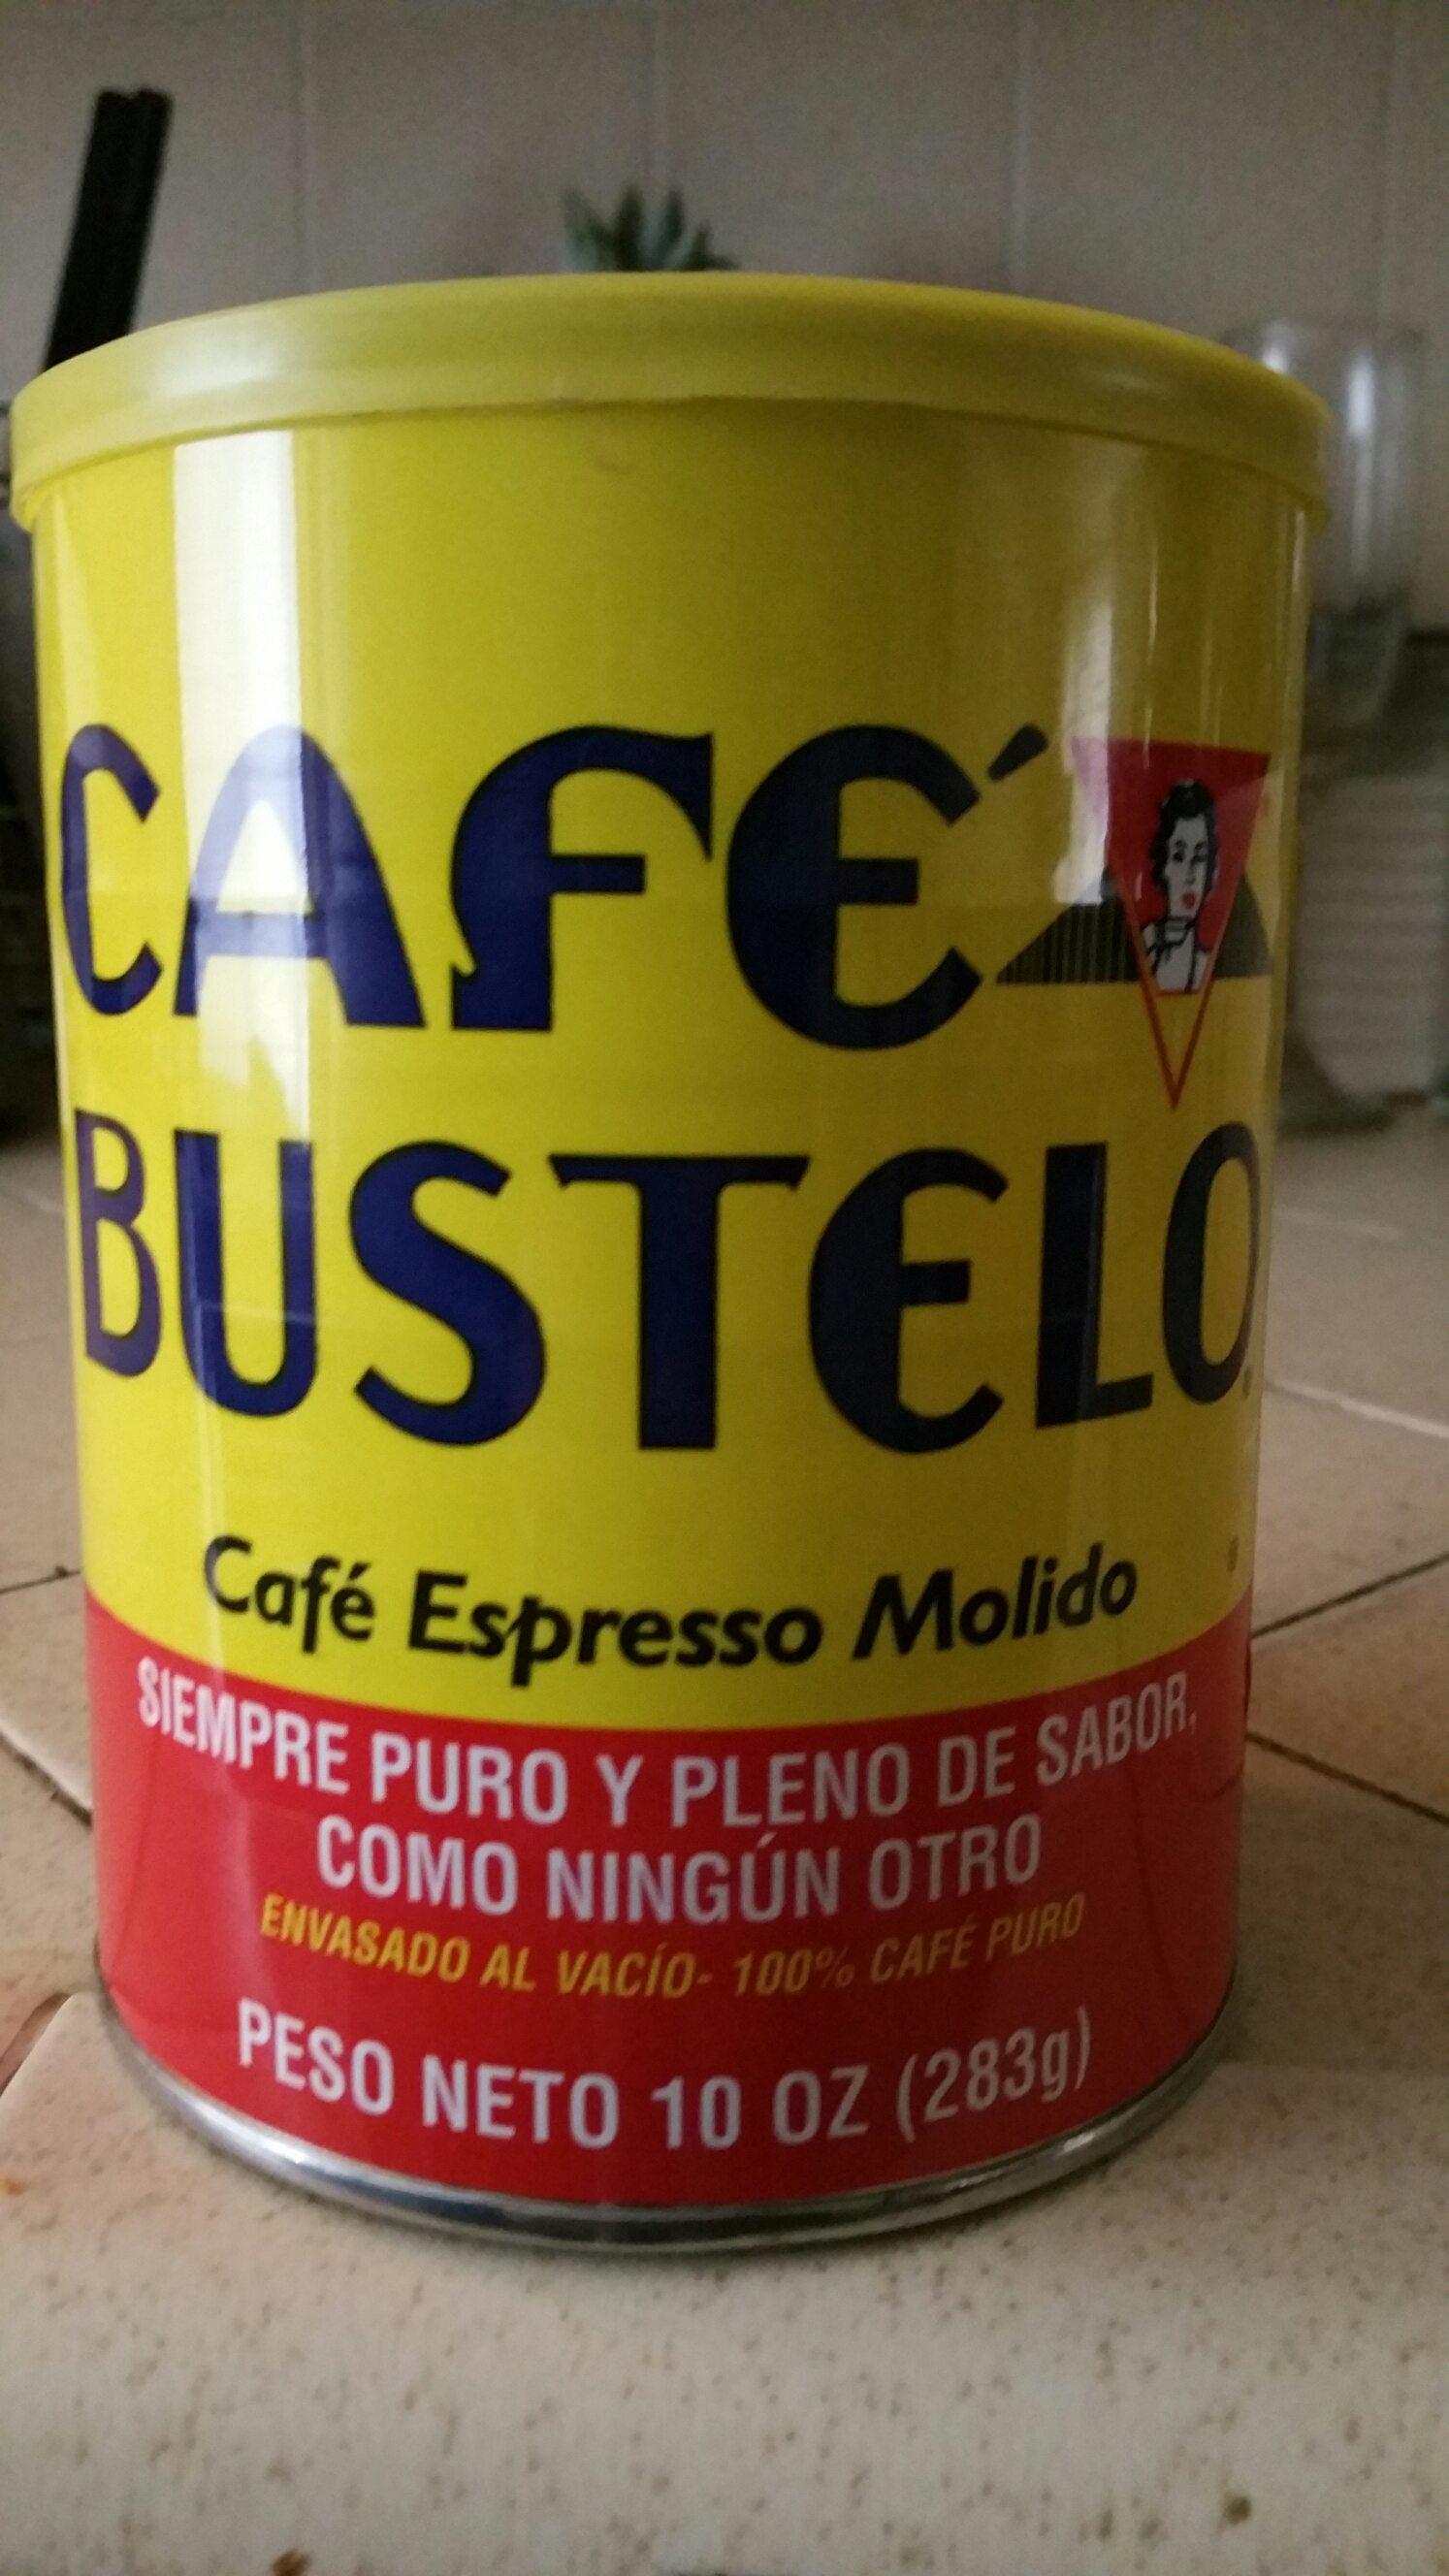 Bustelo is the best coffee for the price